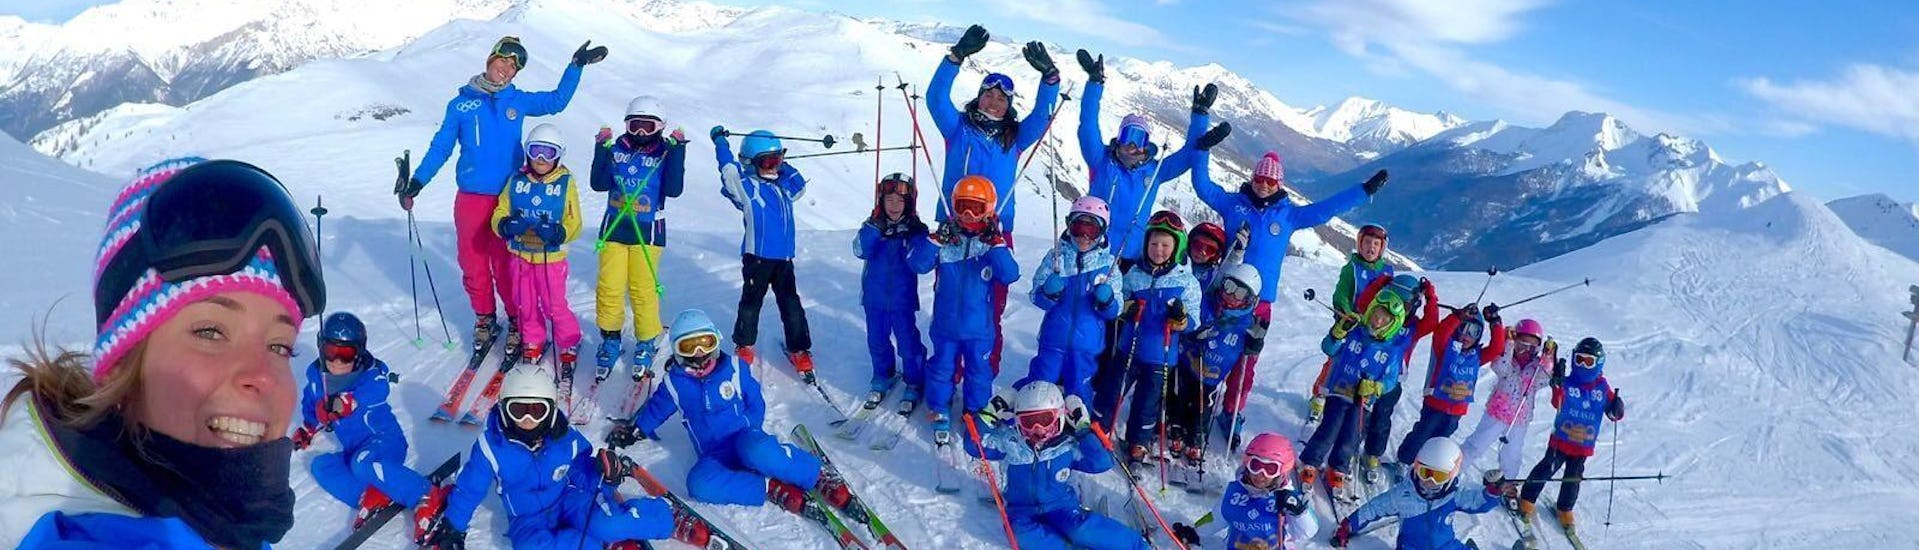 A group of children and their ski instructors from the ski school Scuola di Sci Olimpionica are posing for a photo on top of the mountain in Sestriere, before they get started with their Kids Ski Lessons (5-12 y.) - Advanced.